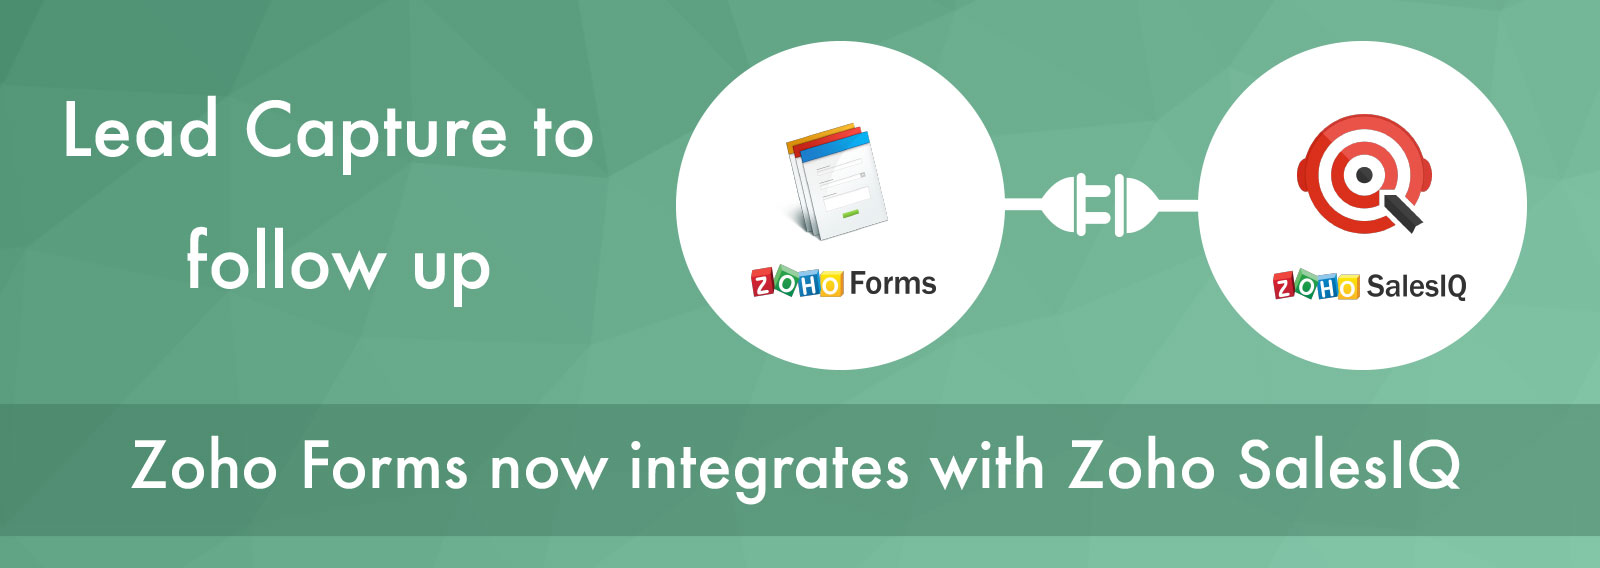 Your data collection stays on point with the new Zoho Forms integration with Zoho SalesIQ